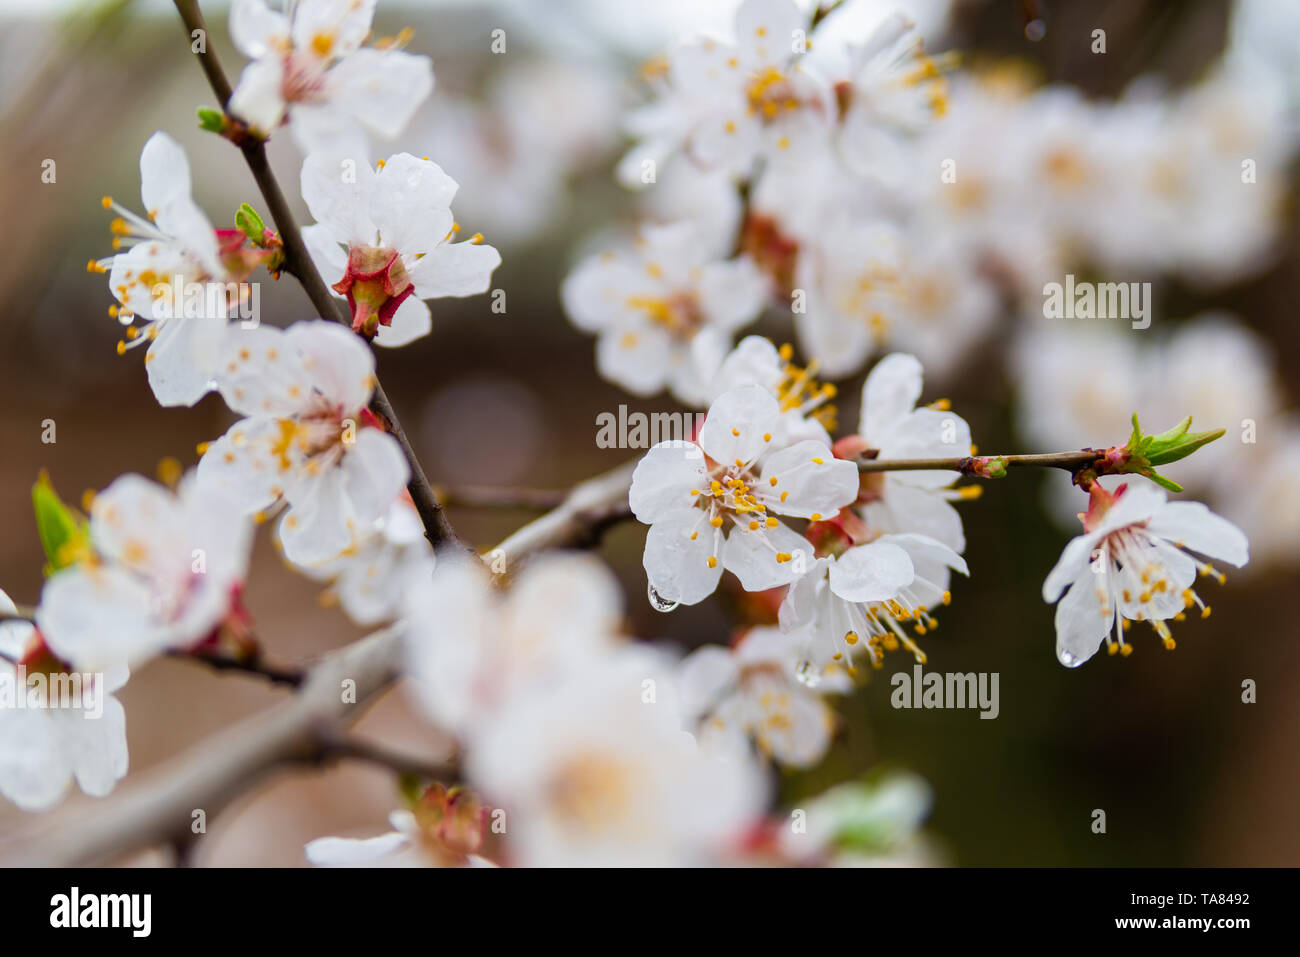 First apricot flowers. Flowering apricot on a clear spring day. - Stock Image